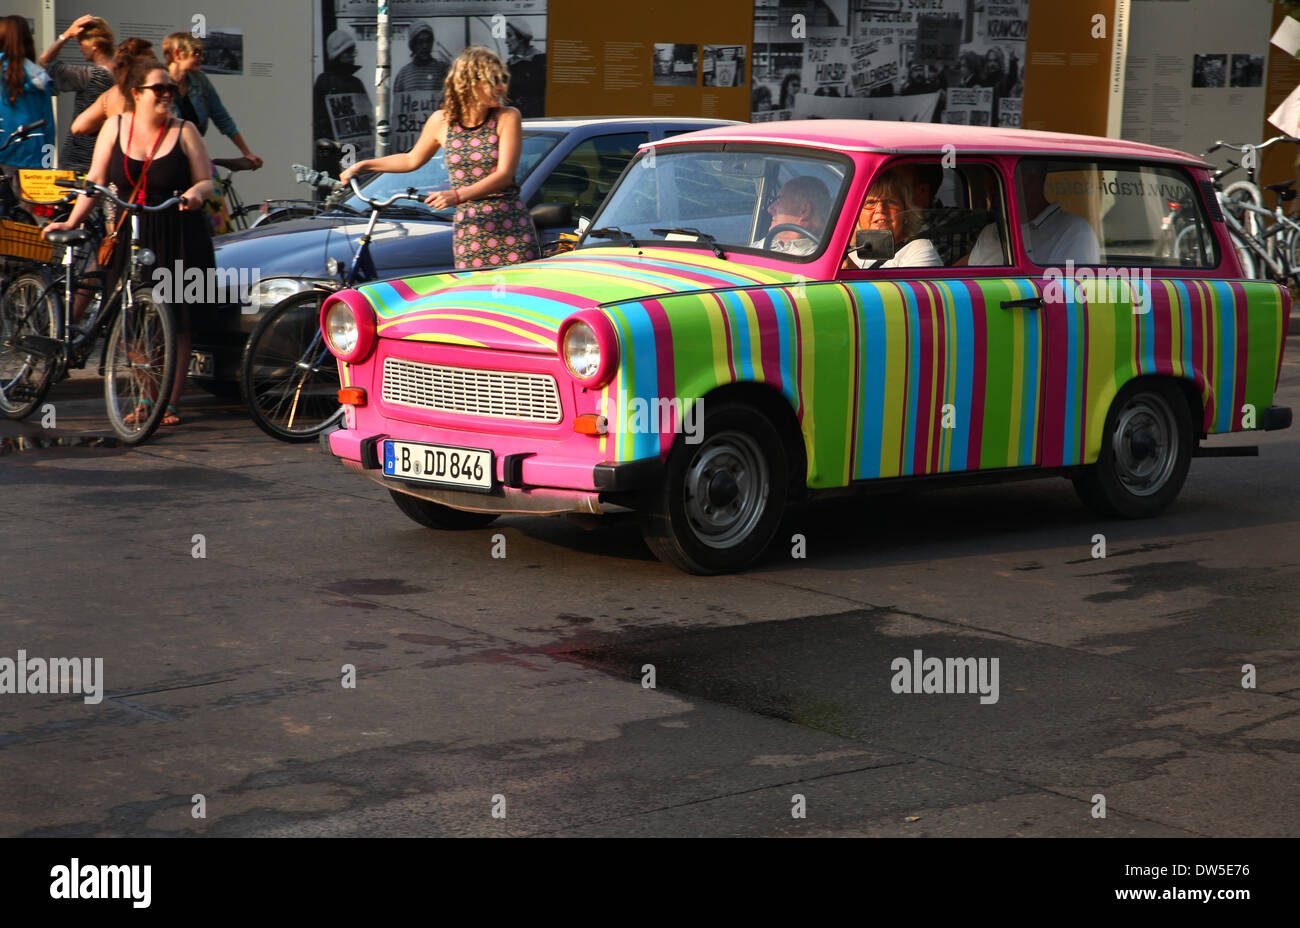 Tourists drive in an East German Trabant car at Checkpoint Charlie in Berlin, August 10, 2013. More and more tourists come to the German capital every year. The photo is part of a series on tourism in Berlin. Photo. Wolfram Steinberg dpa - Stock Image